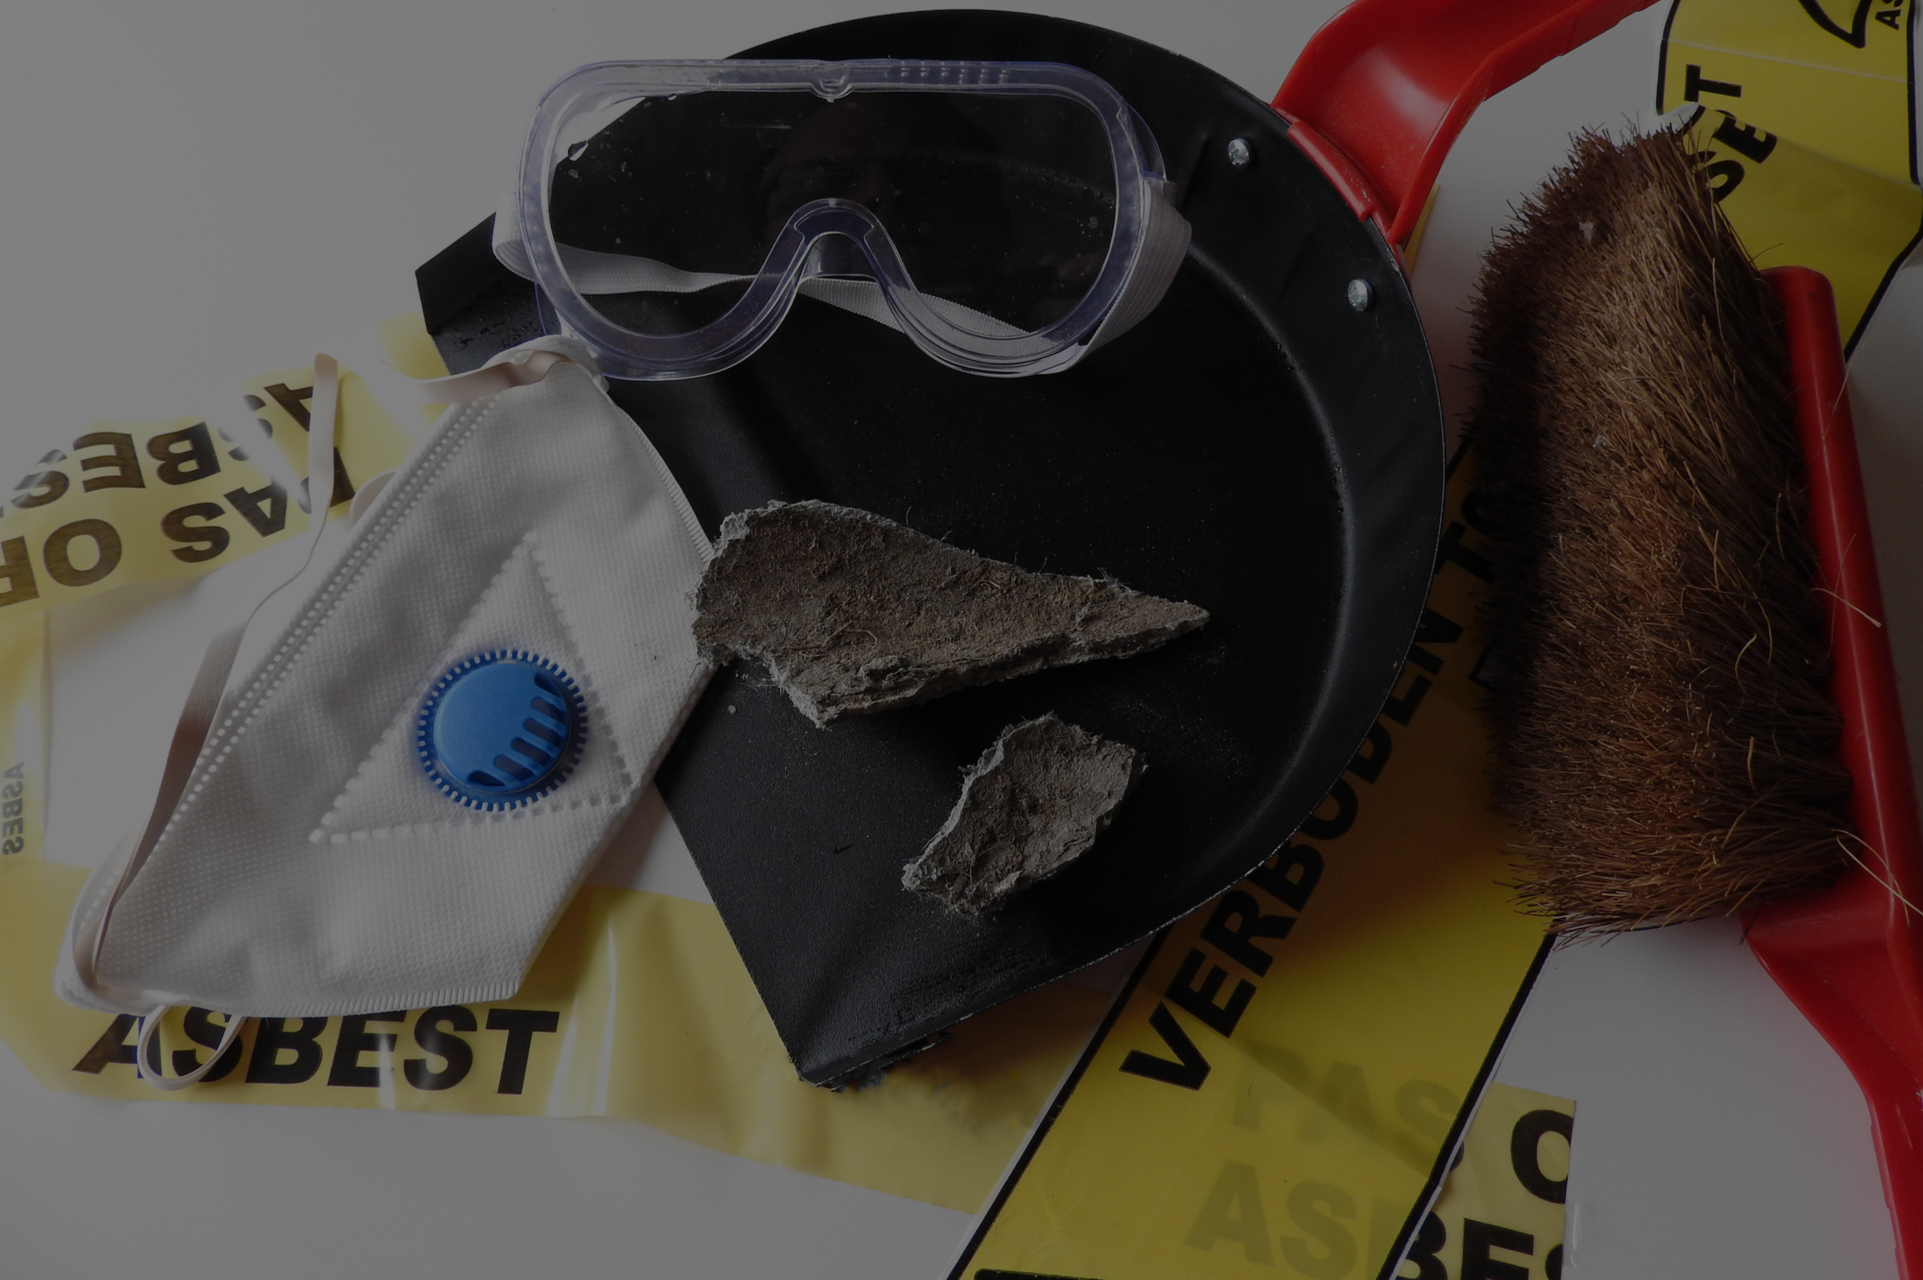 7 Asbestos Facts Every School Should Know